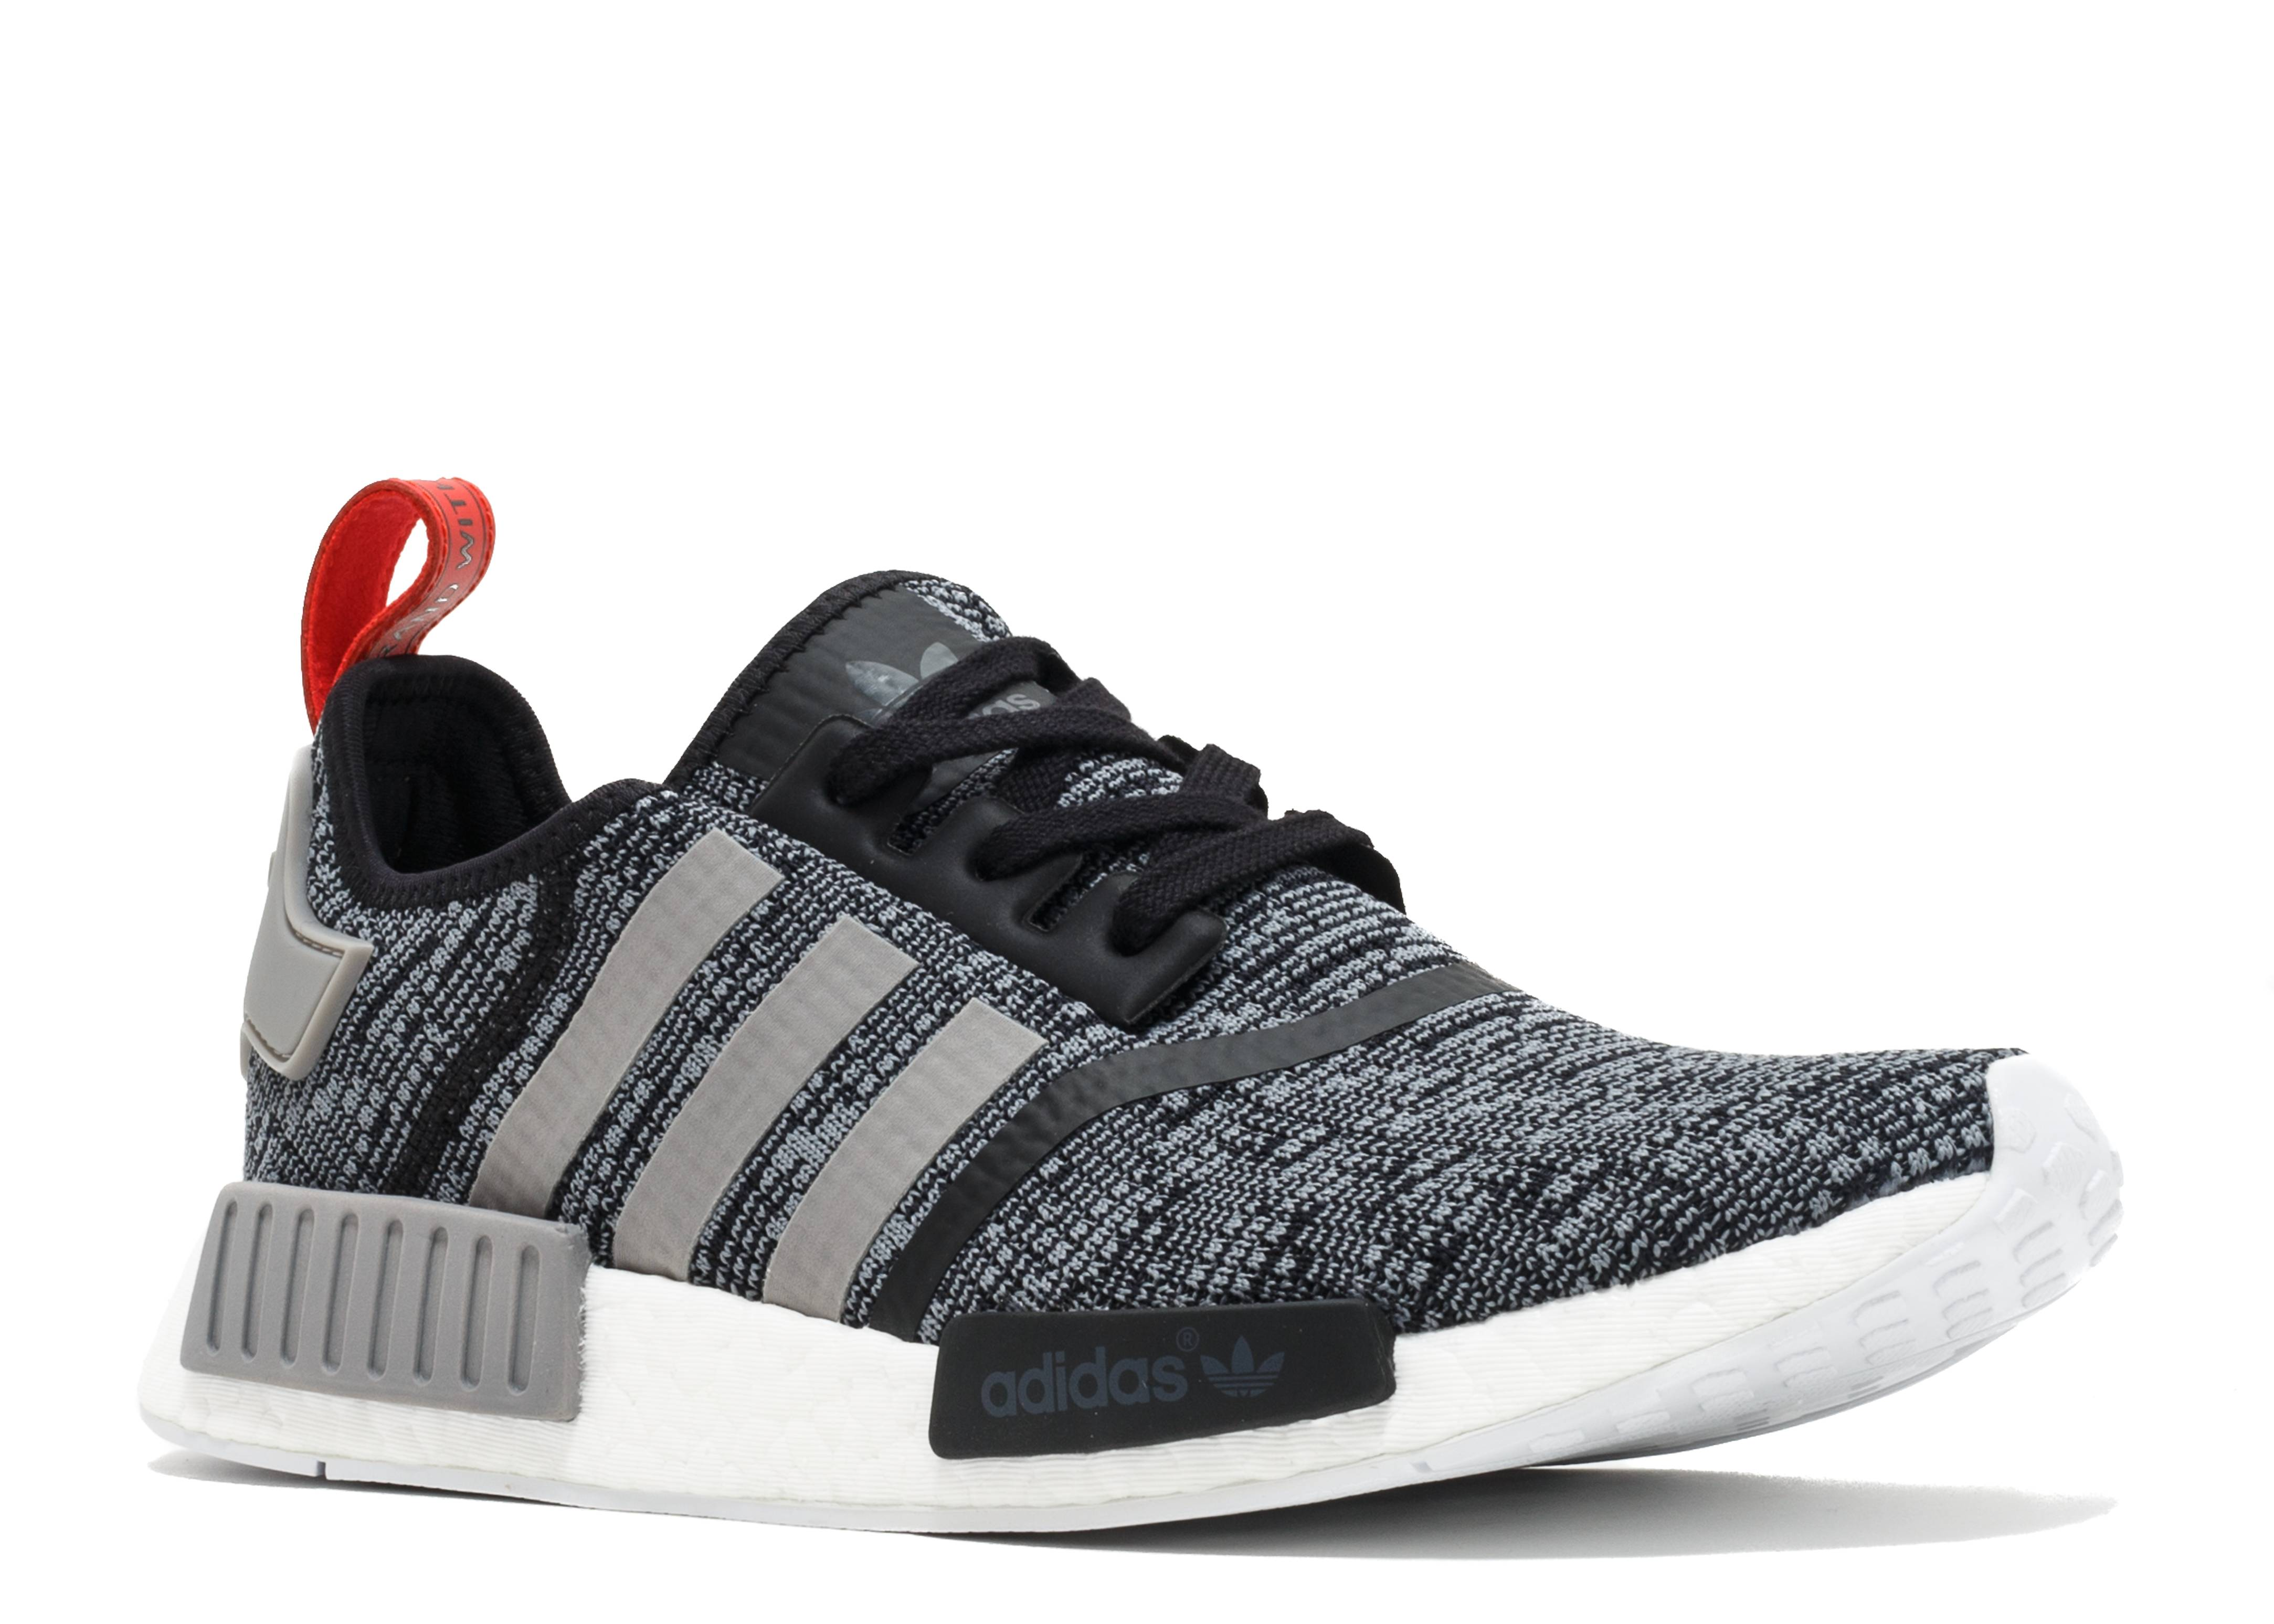 Adidas NMD R1 Champs Exclusive 3m Reflective B39506 First Look